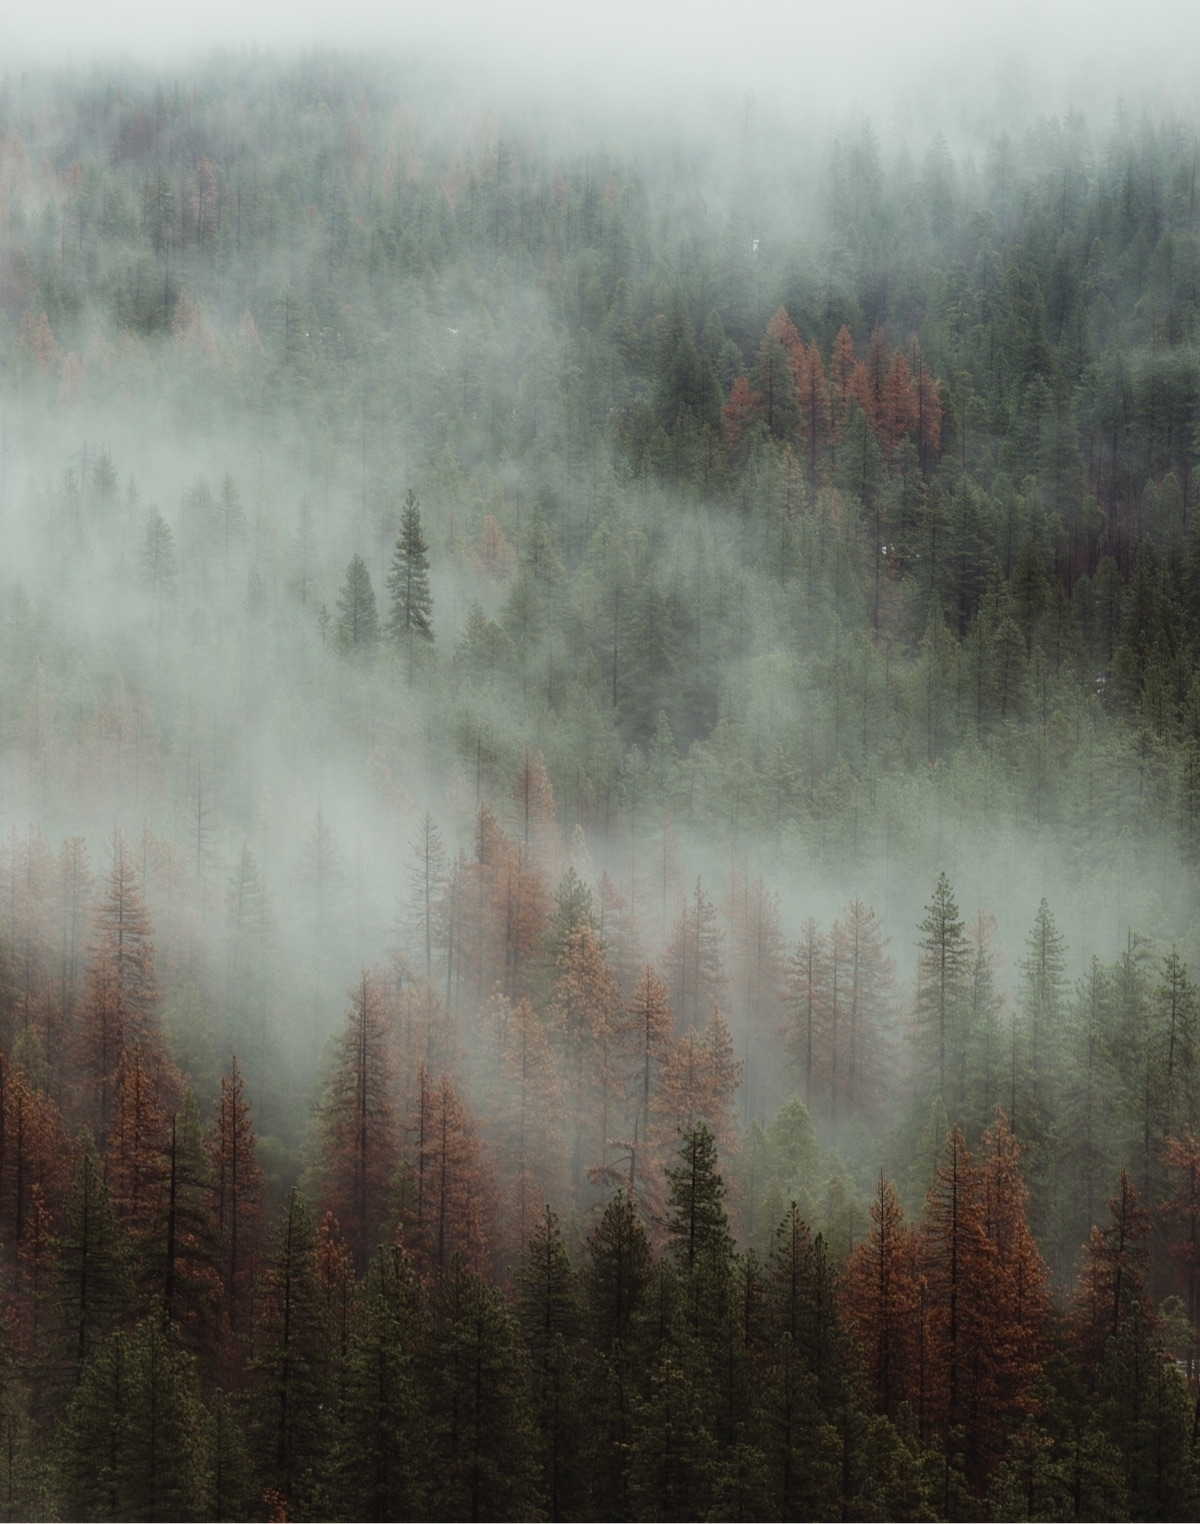 Yosemite breathing heavy mornin - peteramend | ello